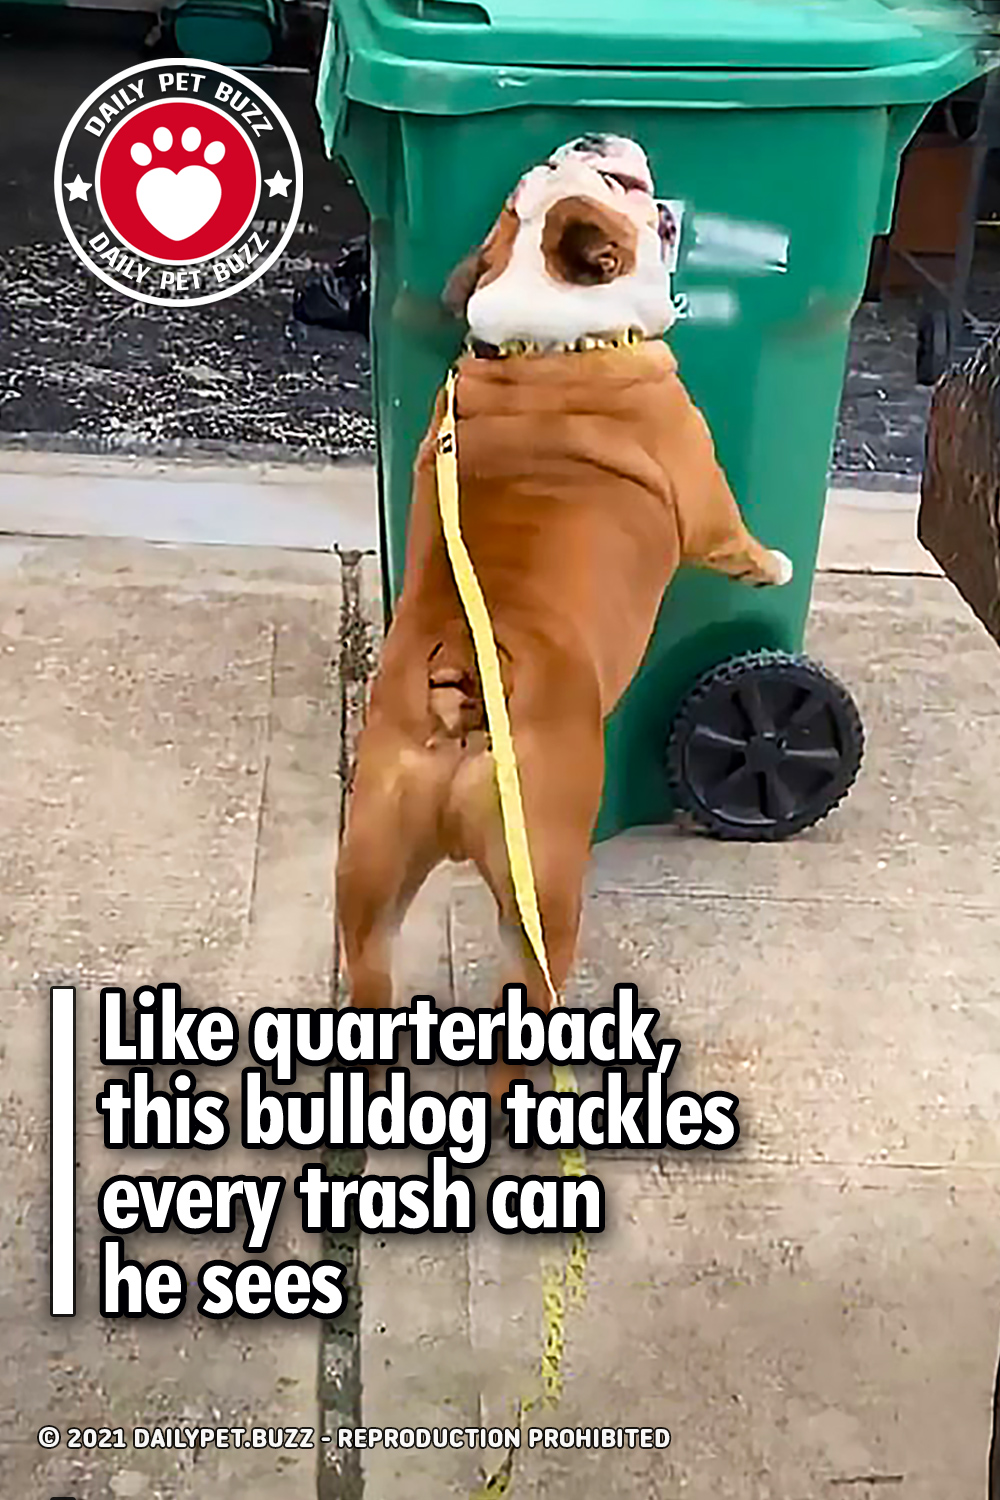 Like quarterback, this bulldog tackles every trash can he sees